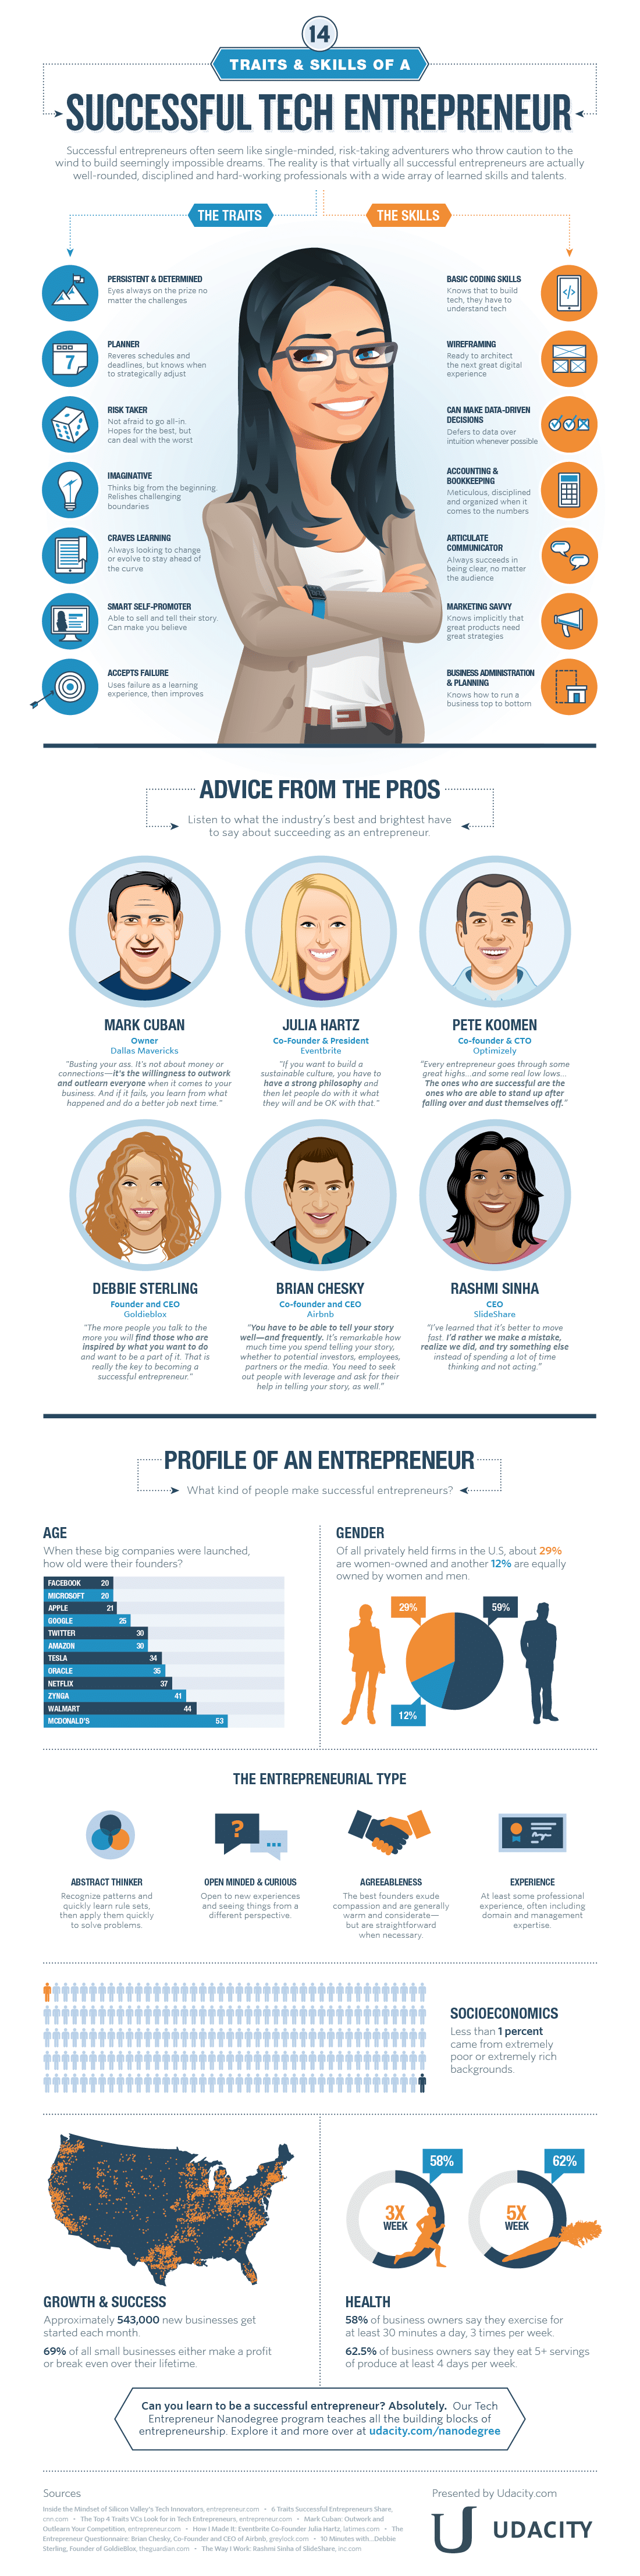 Traits and Skills of a Successful Entrepreneur. via blog.udacity.com